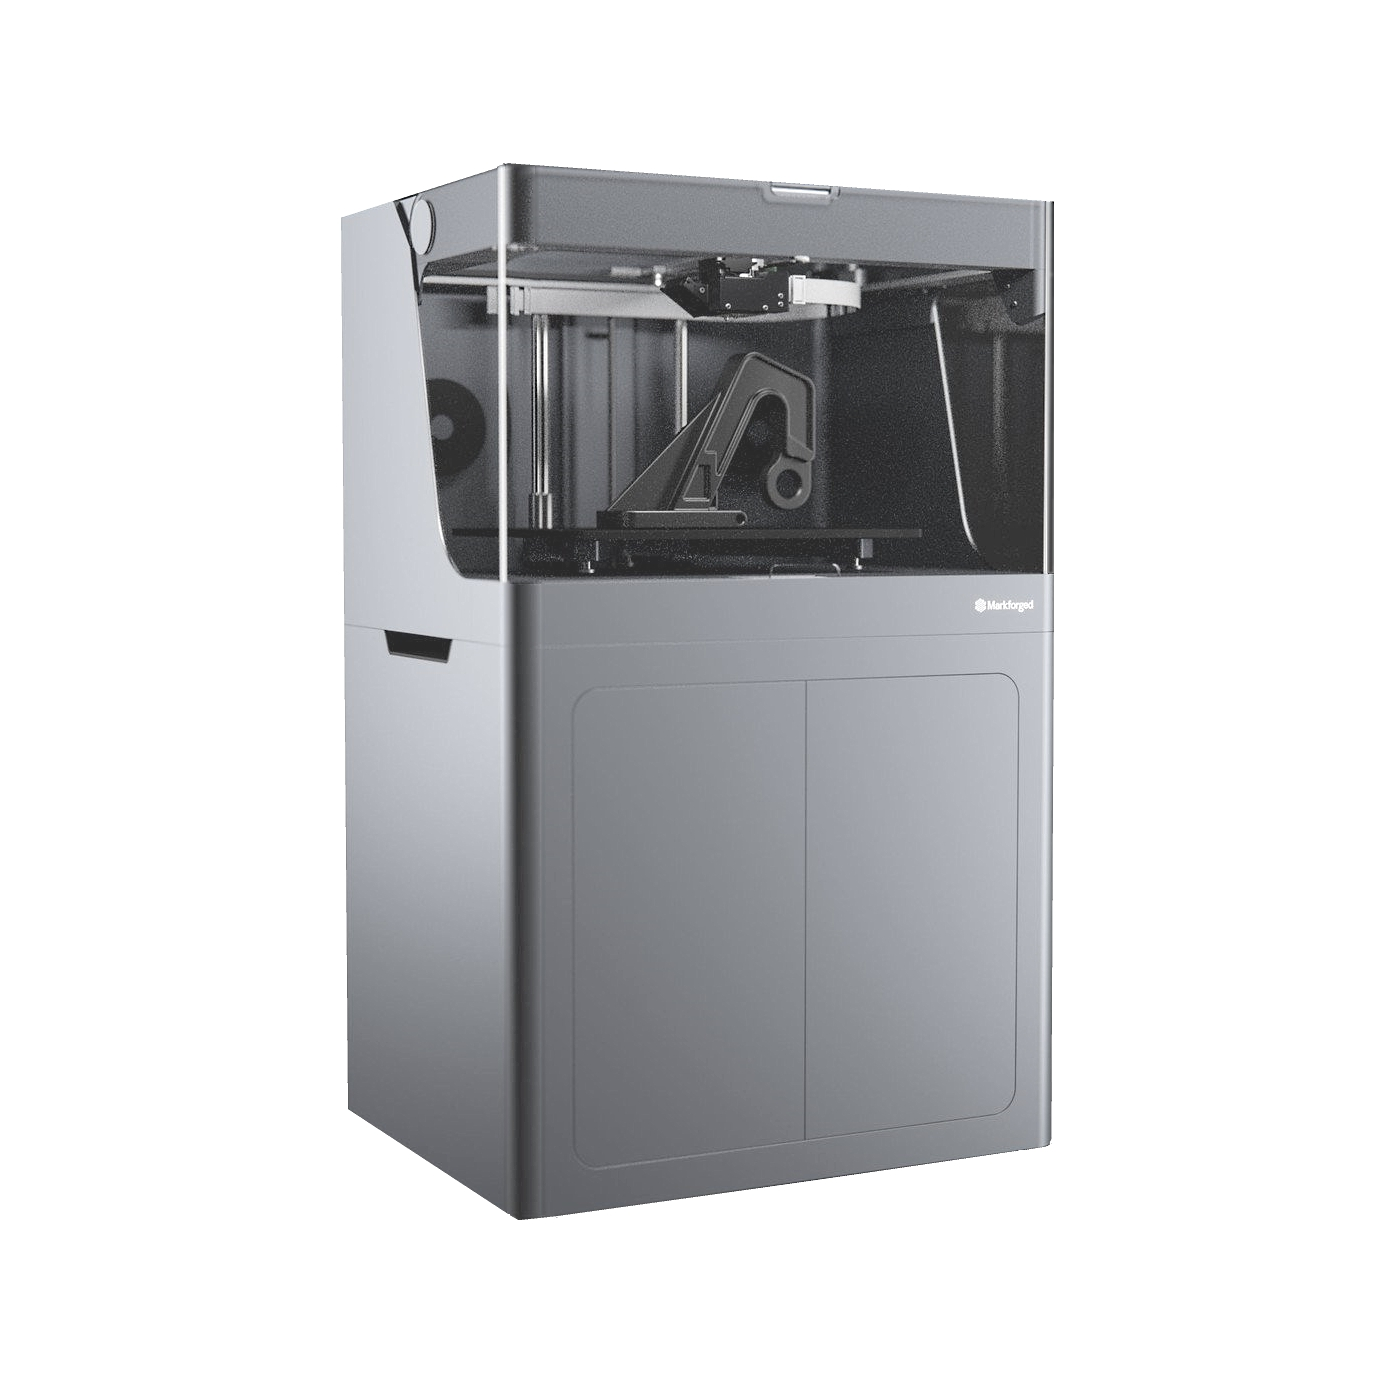 The Markforged X7 Nylon Is The Most Powerful 3D Printer On